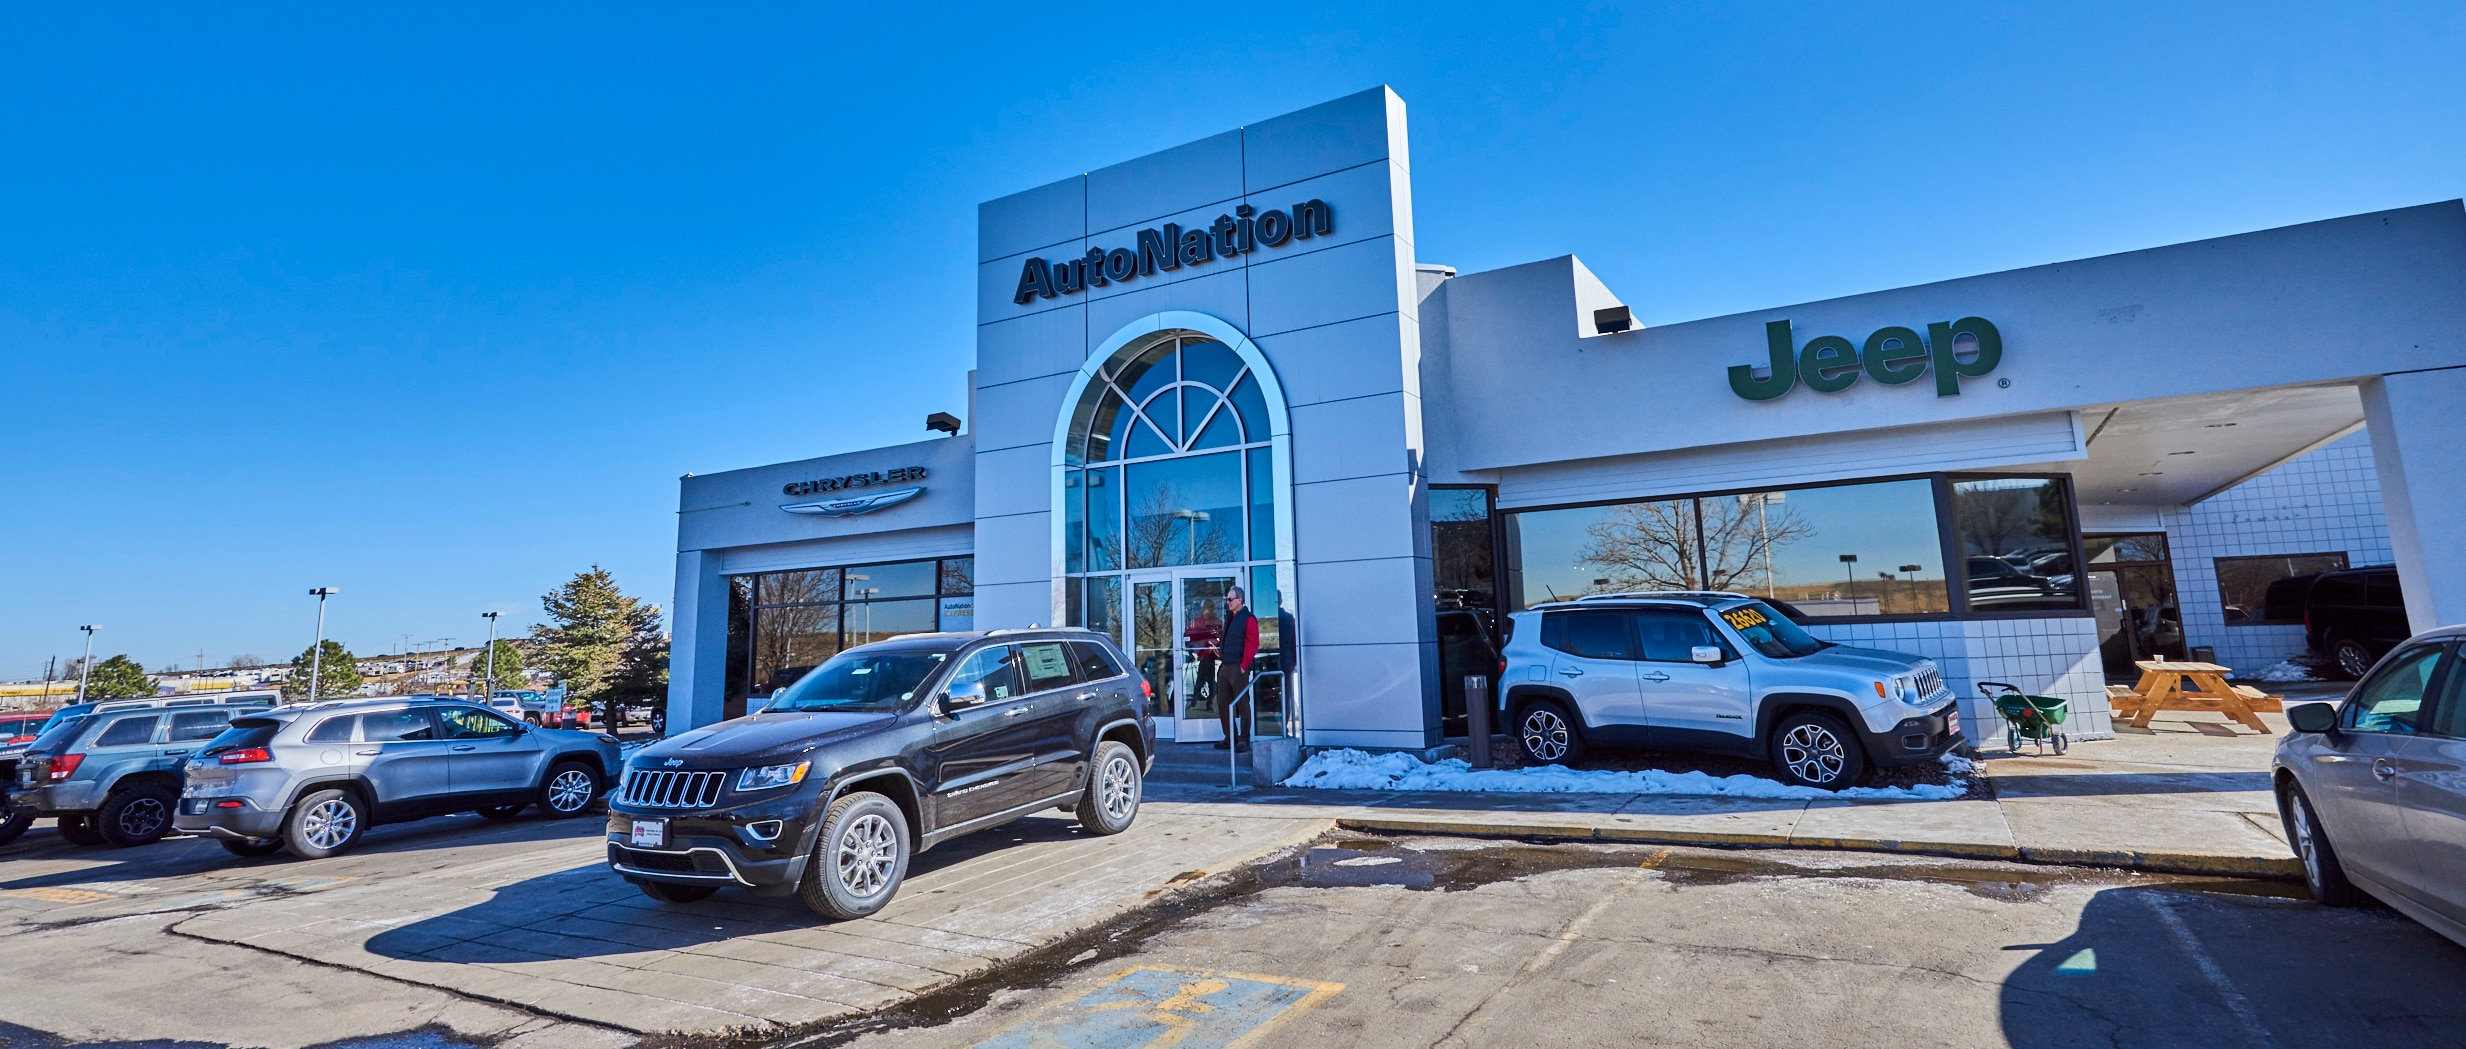 Autonation Jeep Denver >> About AutoNation Chrysler Jeep West | Golden,CO